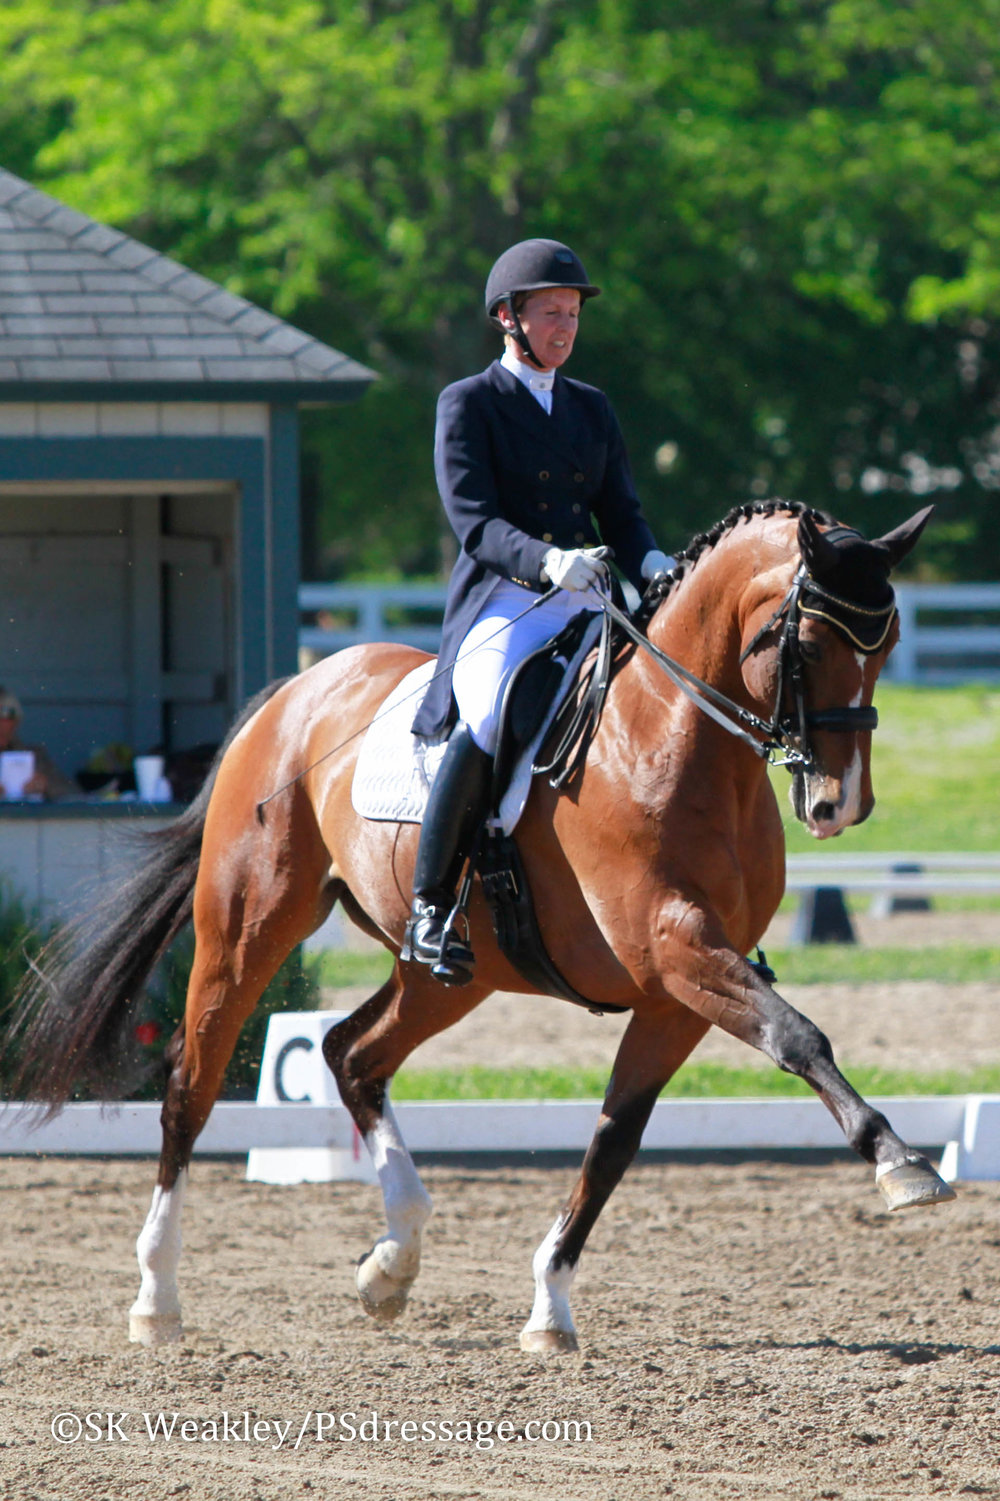 Diane Creech and Chrevis Christo at the Kentucky Dressage Association Spring Warm-Up and 28th Annual Show. Photo by Sue Weakley.